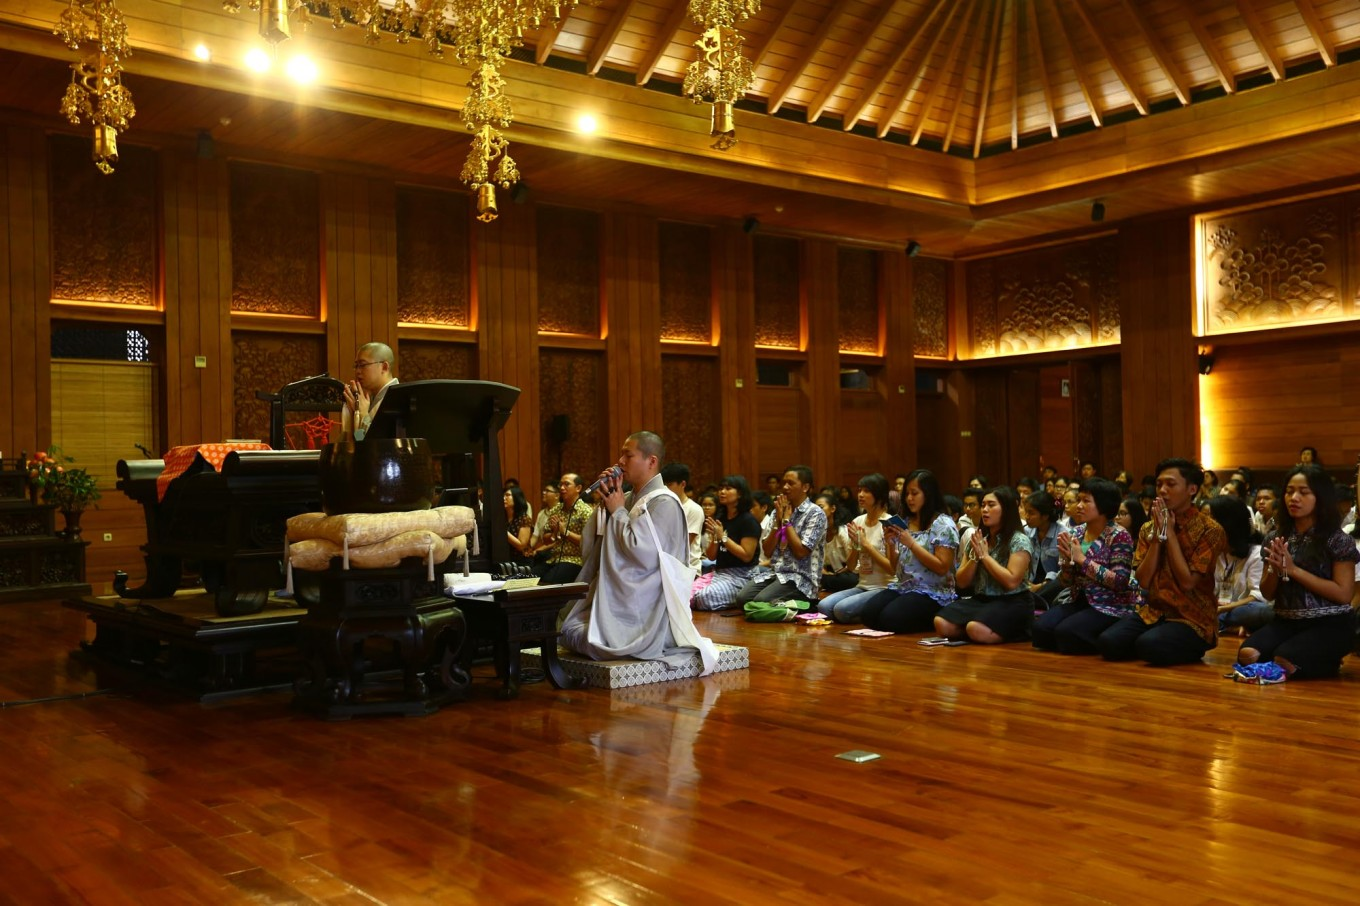 Five places to go in Jakarta to observe religious diversity